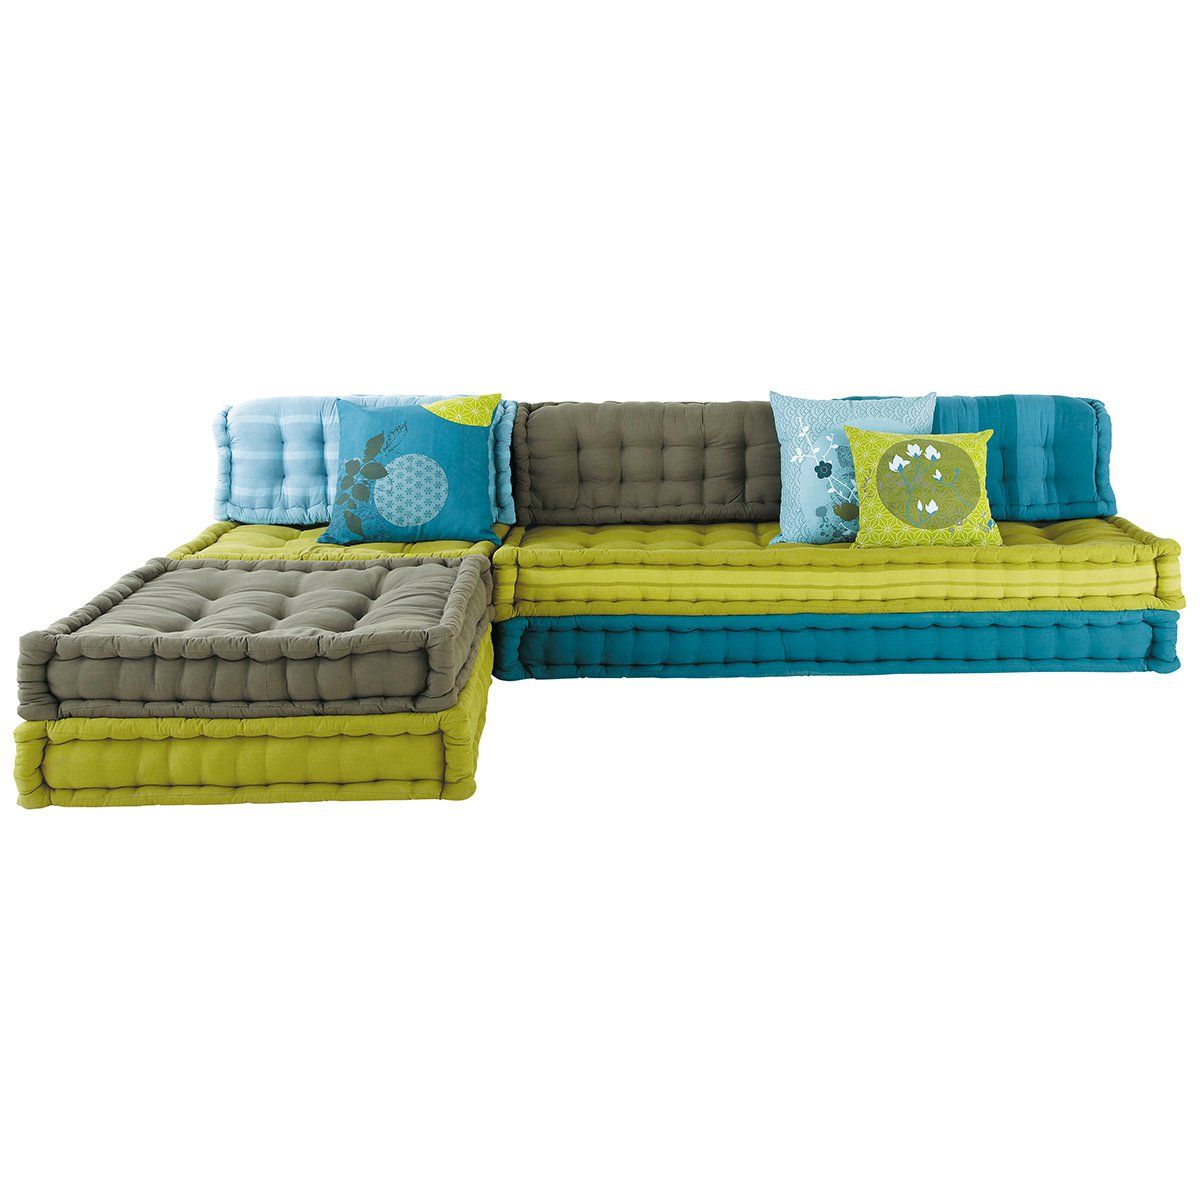 Corner Sofa Bed Green: 6 Seater Cotton Modular Corner Day Bed In Blue And Green